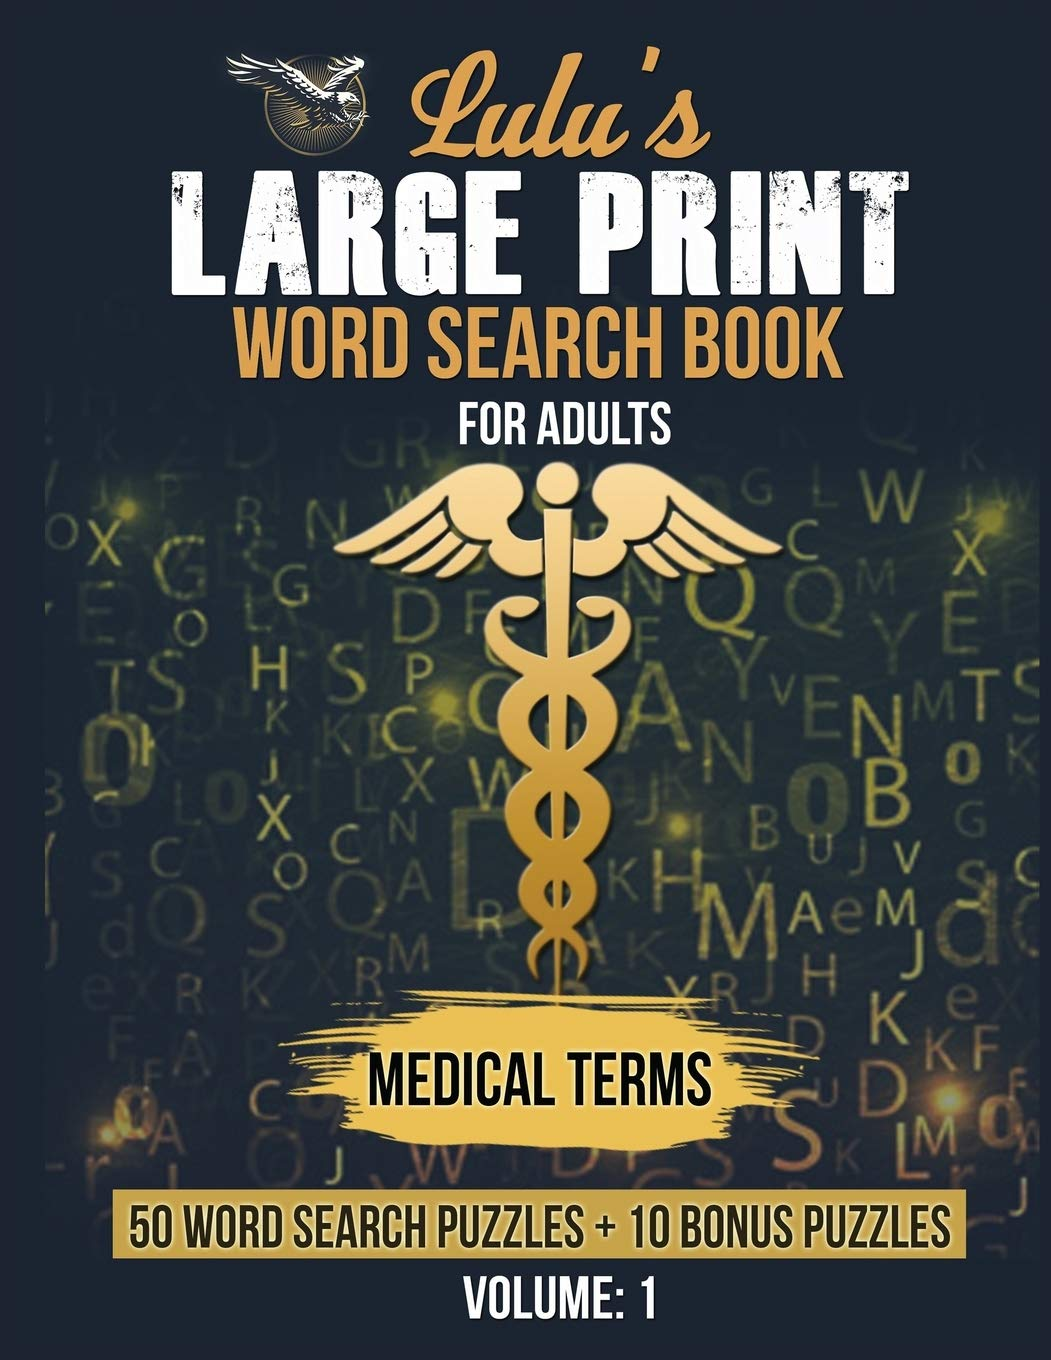 - Amazon.com: Lulu's Large Print Word Search Book For Adults